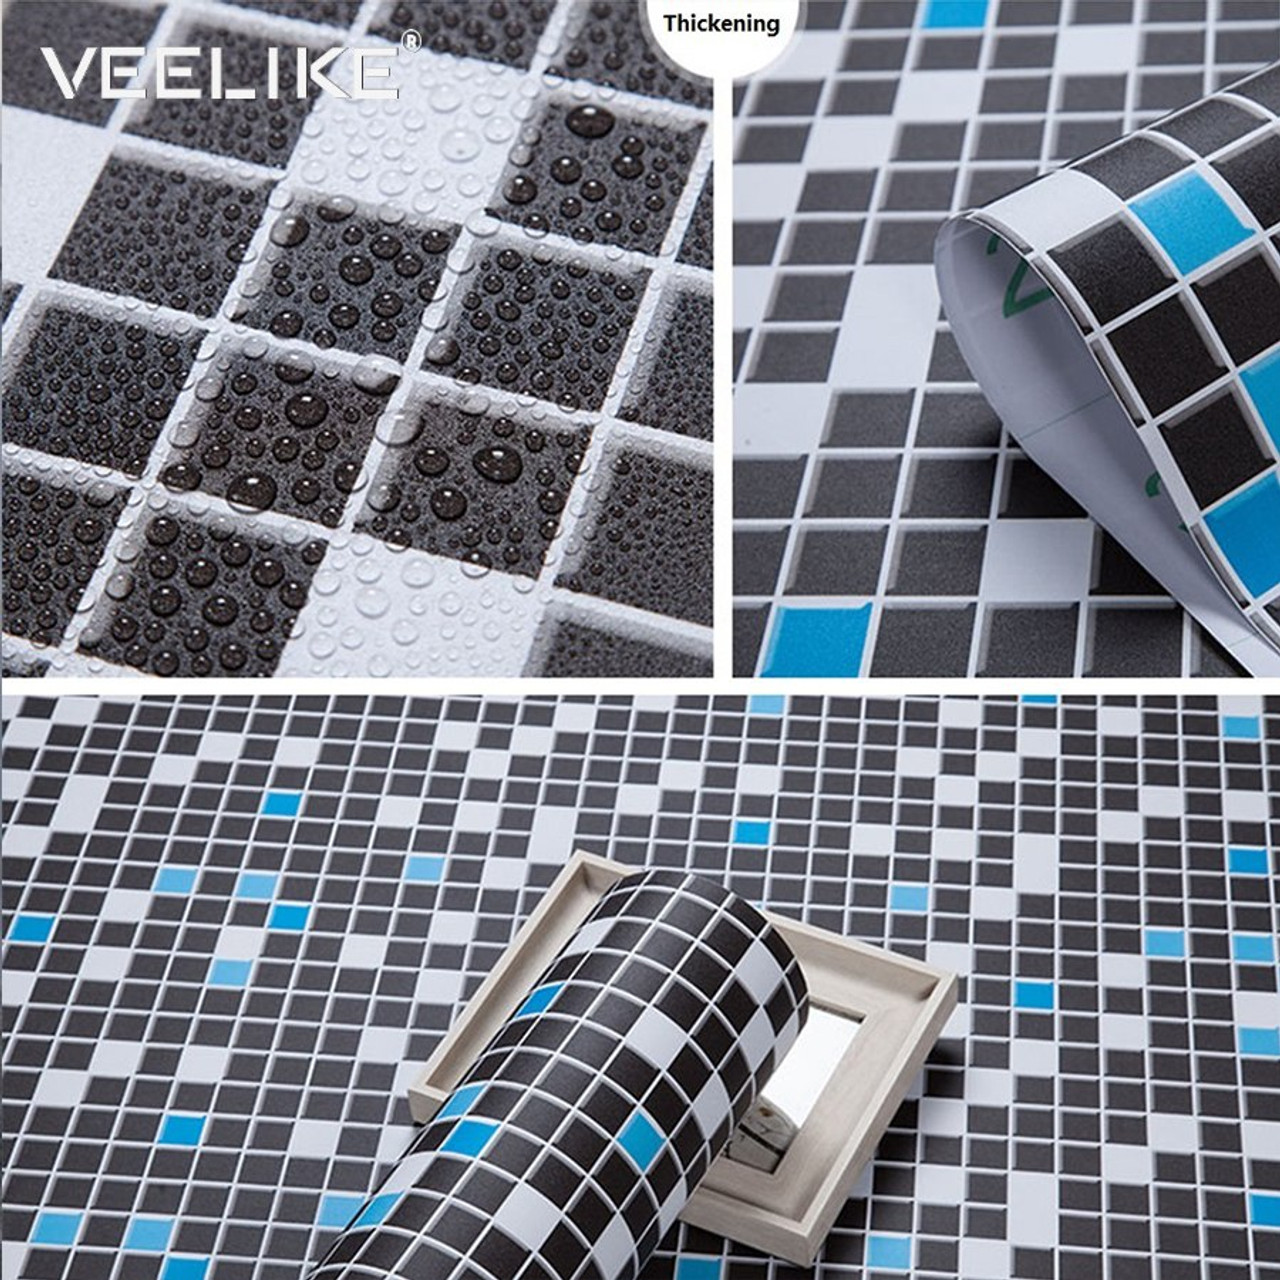 bathroom vinyl pvc self adhesive wallpaper for kitchen backsplash tiles sticker contact paper waterproof home decor wall papers